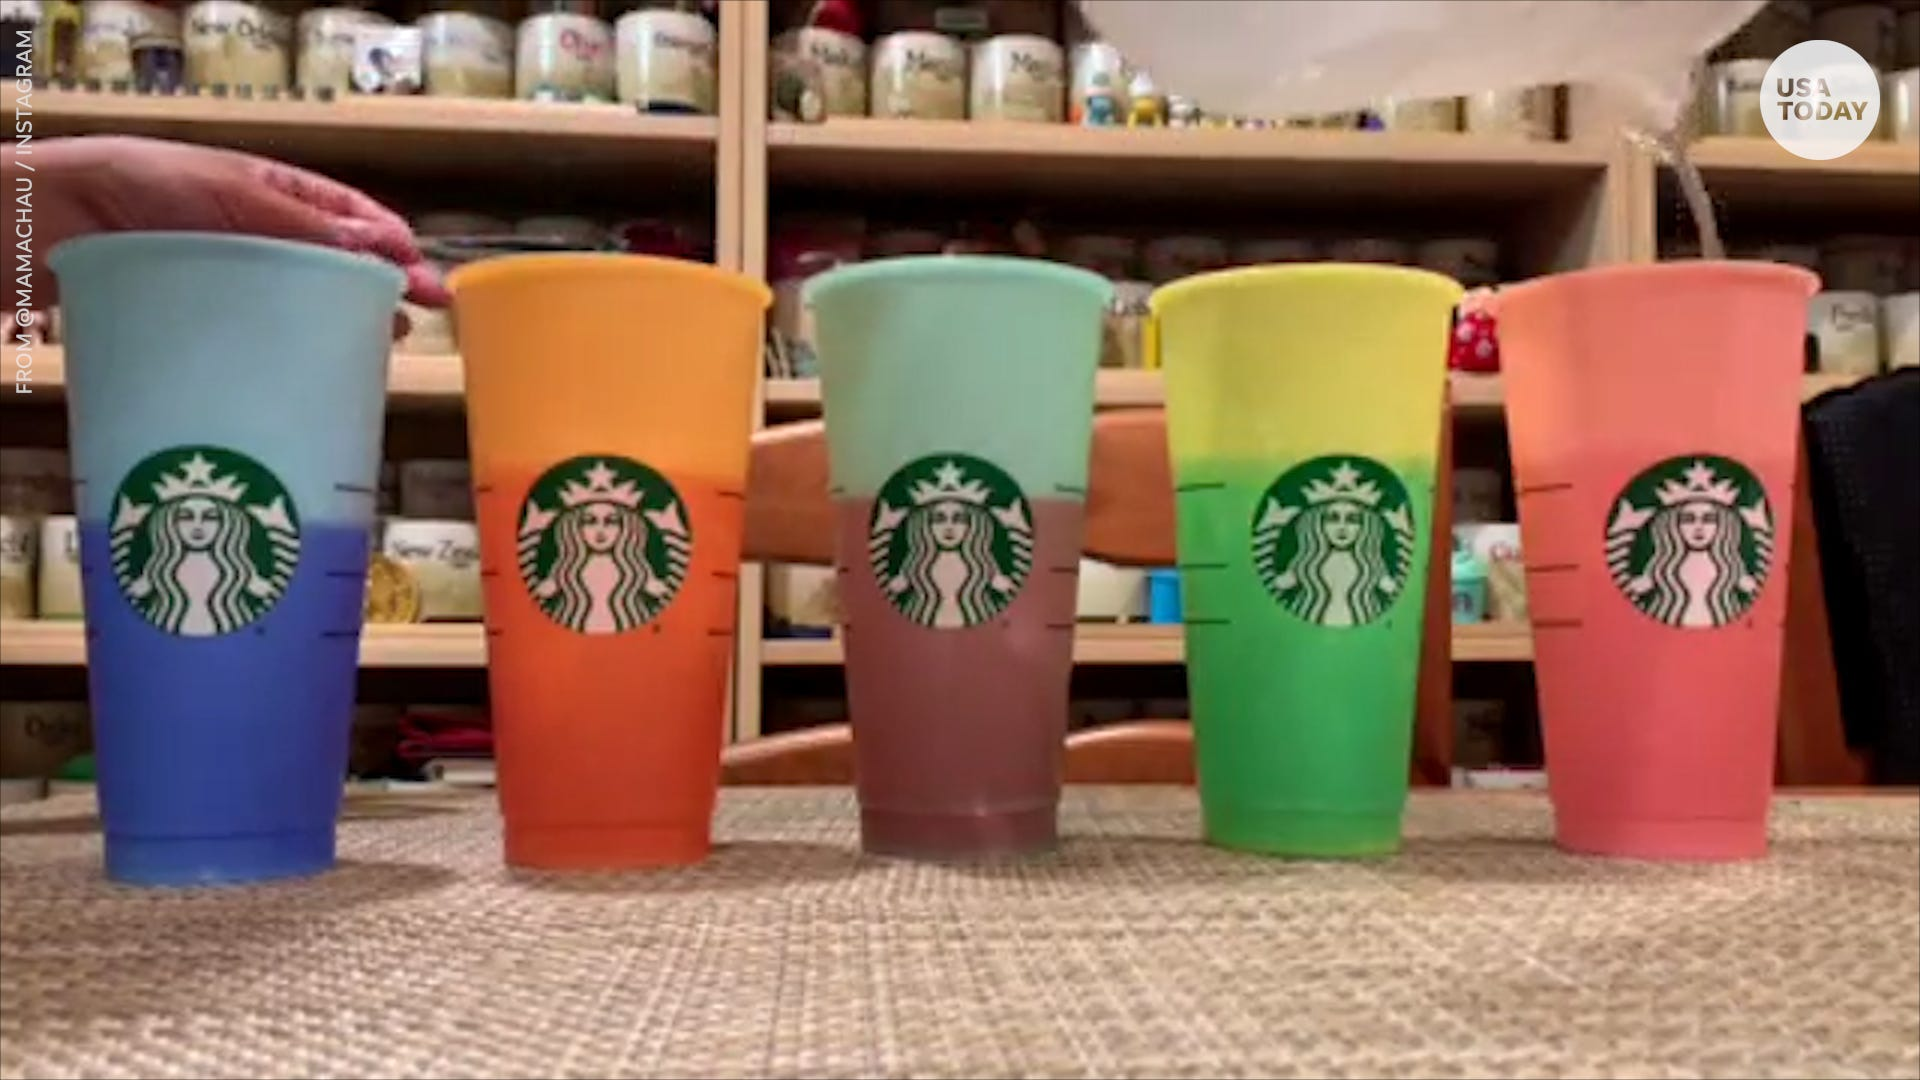 ceaba6cc411 Starbucks' color-changing cups are selling out: where to find one